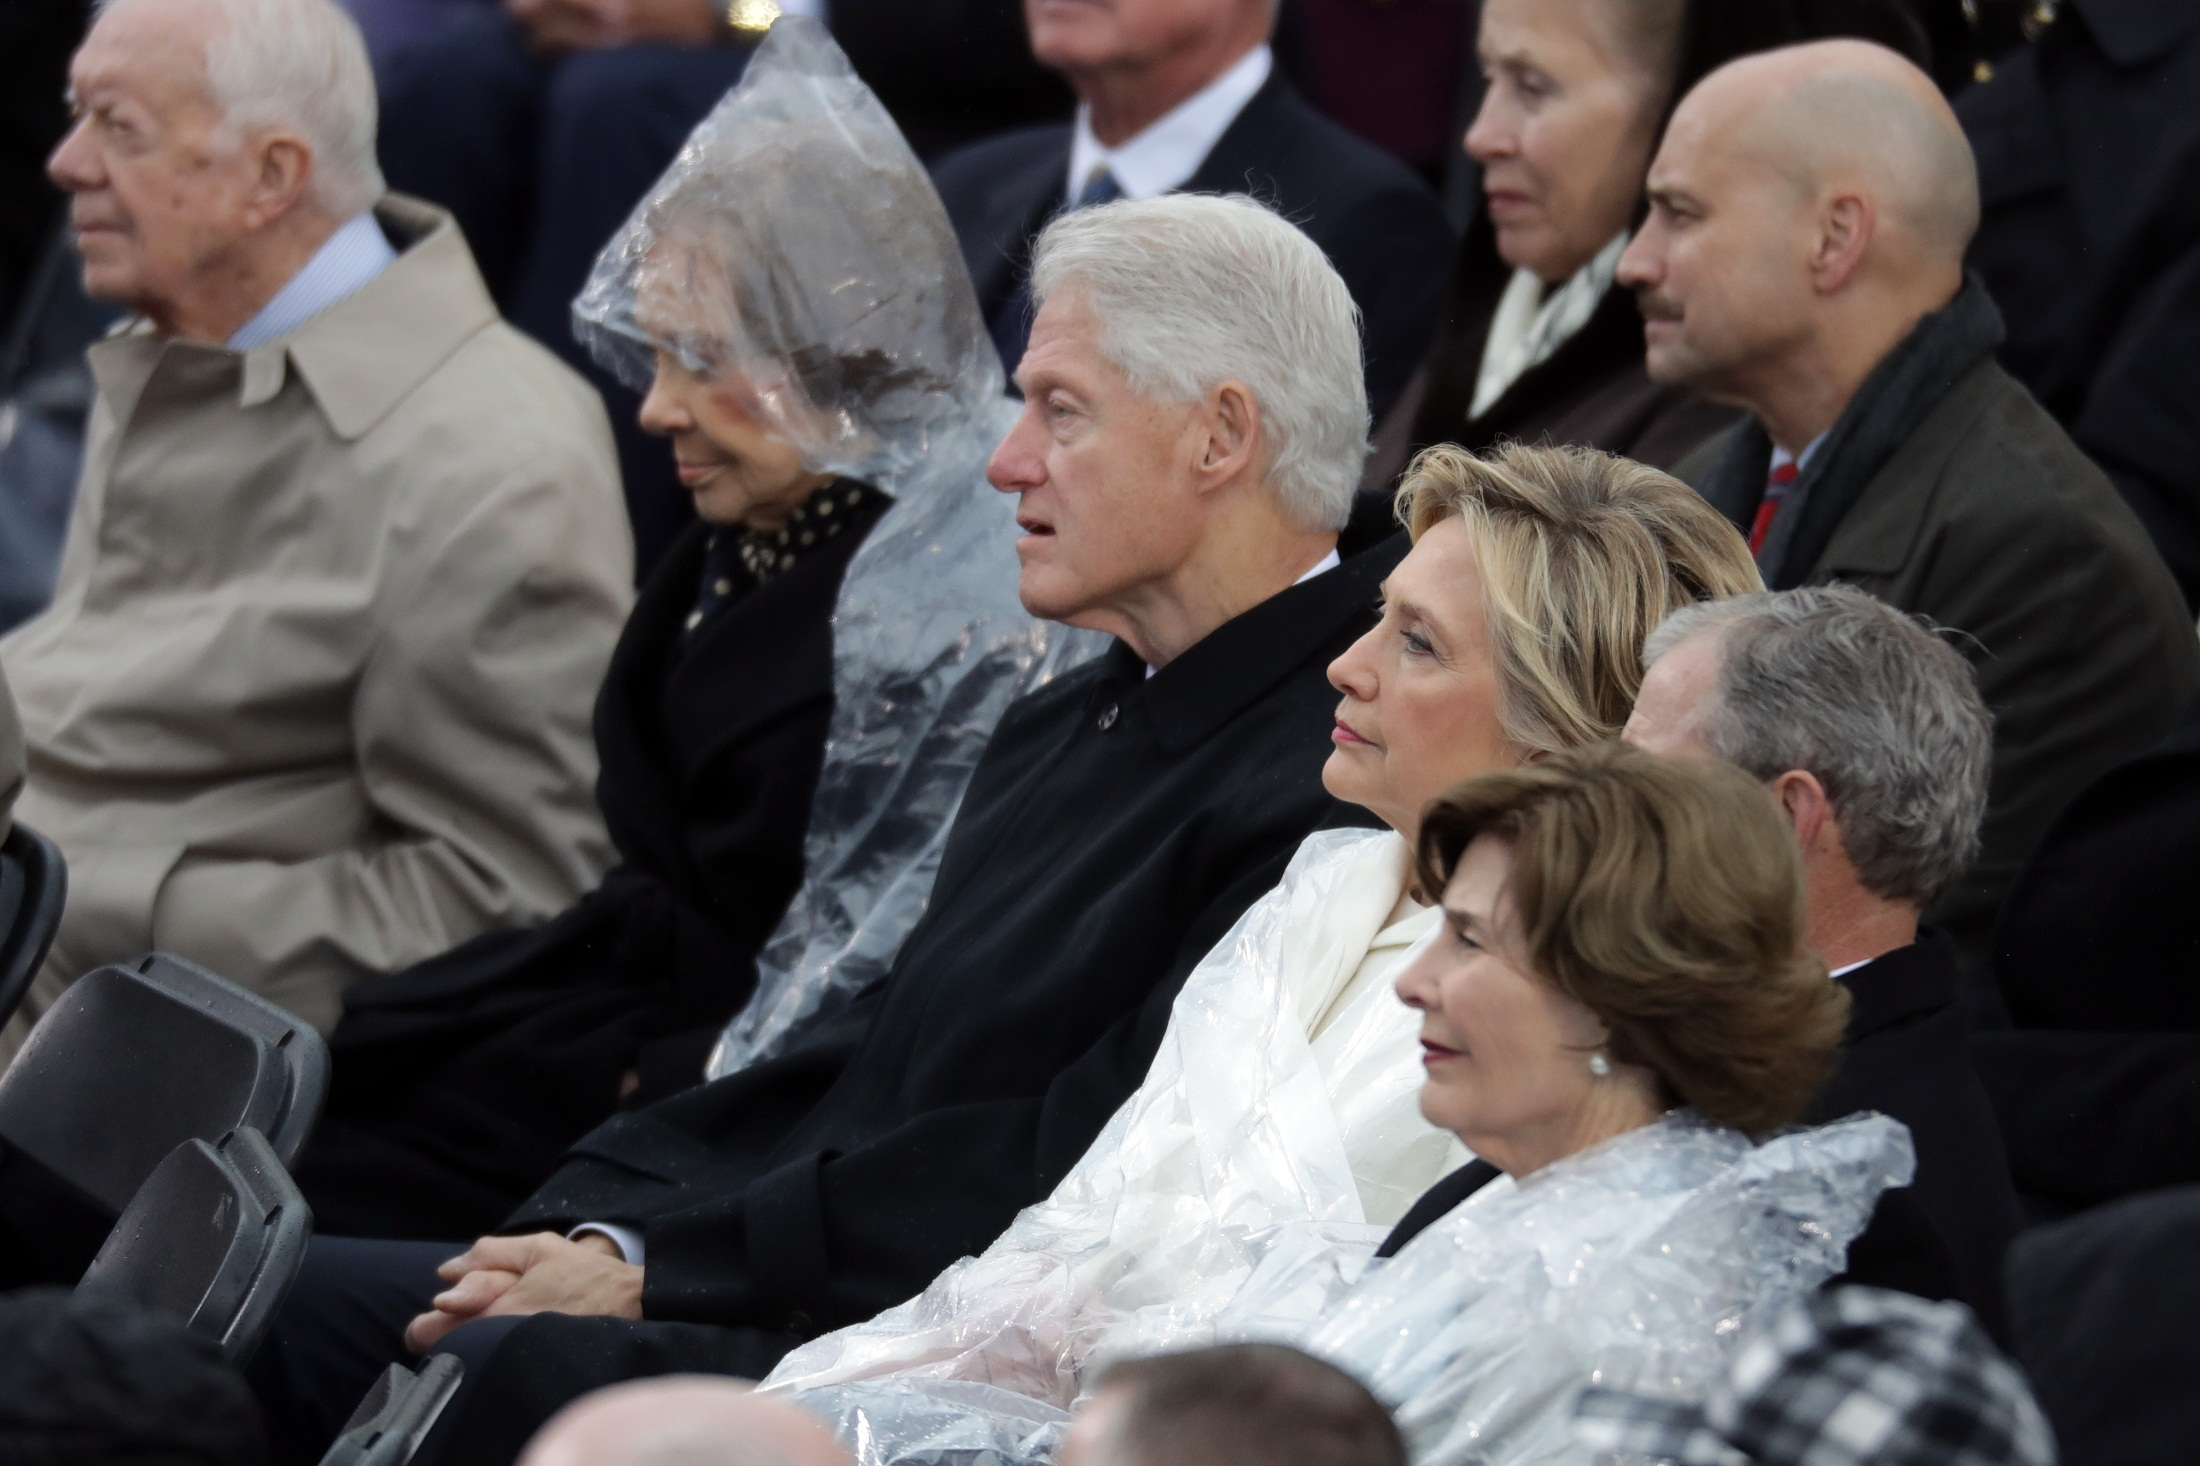 WASHINGTON, DC - JANUARY 20: (L-R) Former President Jimmy Carter, former first lady Rosalynn Carter, former President Bill Clinton, former Democratic presidential nominee Hillary Clinton, former President George W. Bush and former first lady Laura Bush watch President Donald Trump's inaugural address on the West Front of the U.S. Capitol on January 20, 2017 in Washington, DC. In today's inauguration ceremony Donald J. Trump becomes the 45th president of the United States.   Chip Somodevilla/Getty Images/AFP